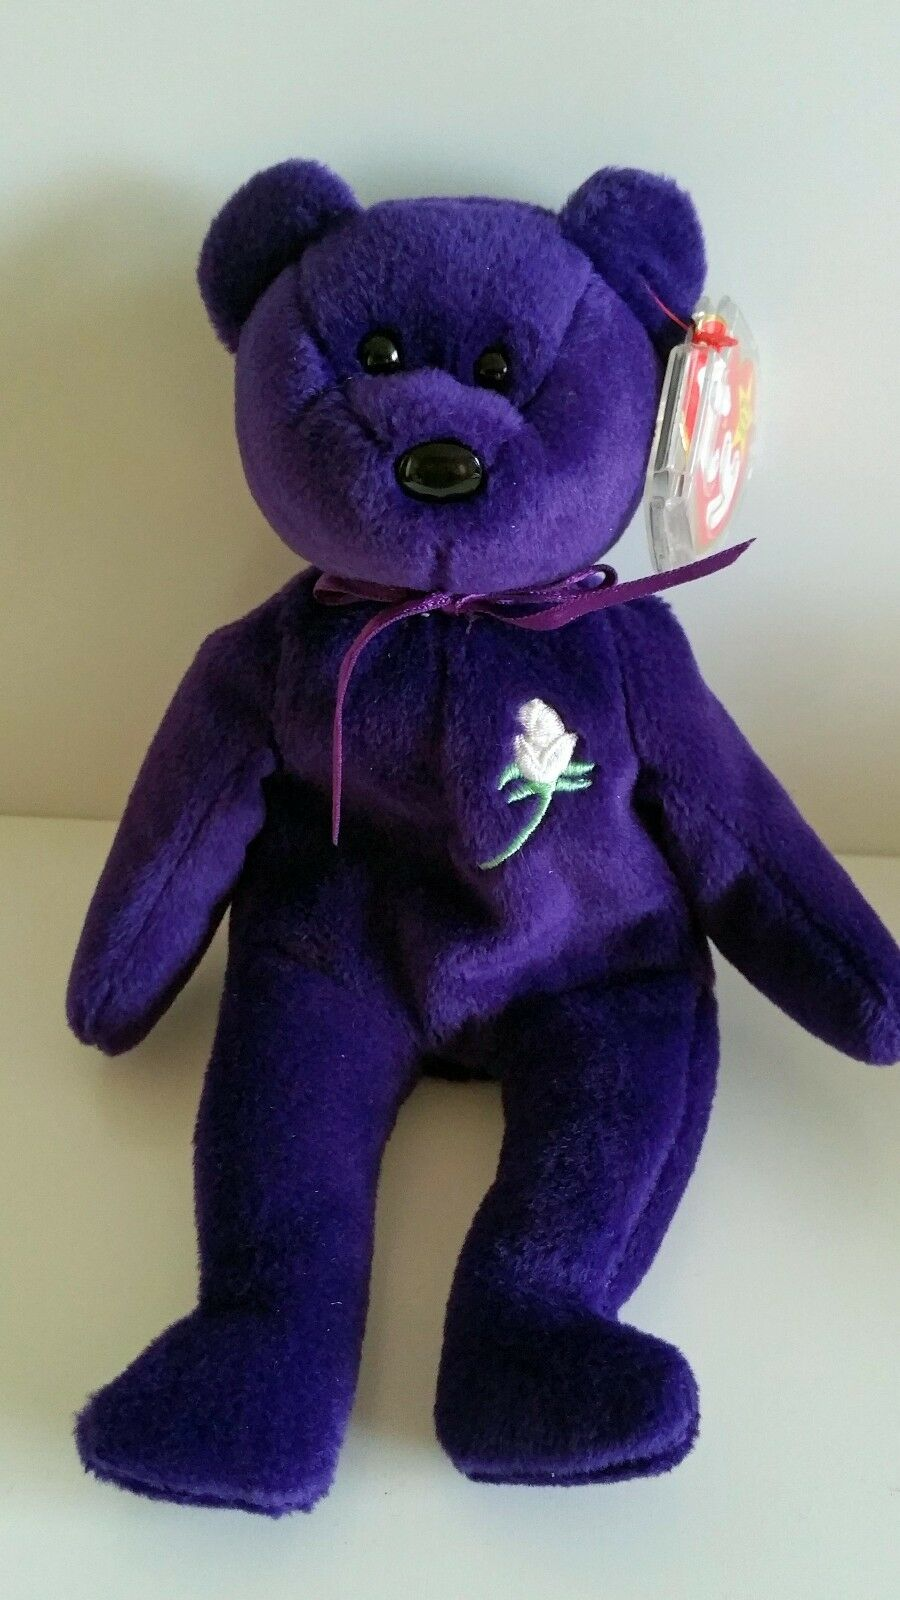 Princess Diana Beanie Baby 1st Edition, Rare 1997 Ty P.E. Indonesia No Spaces